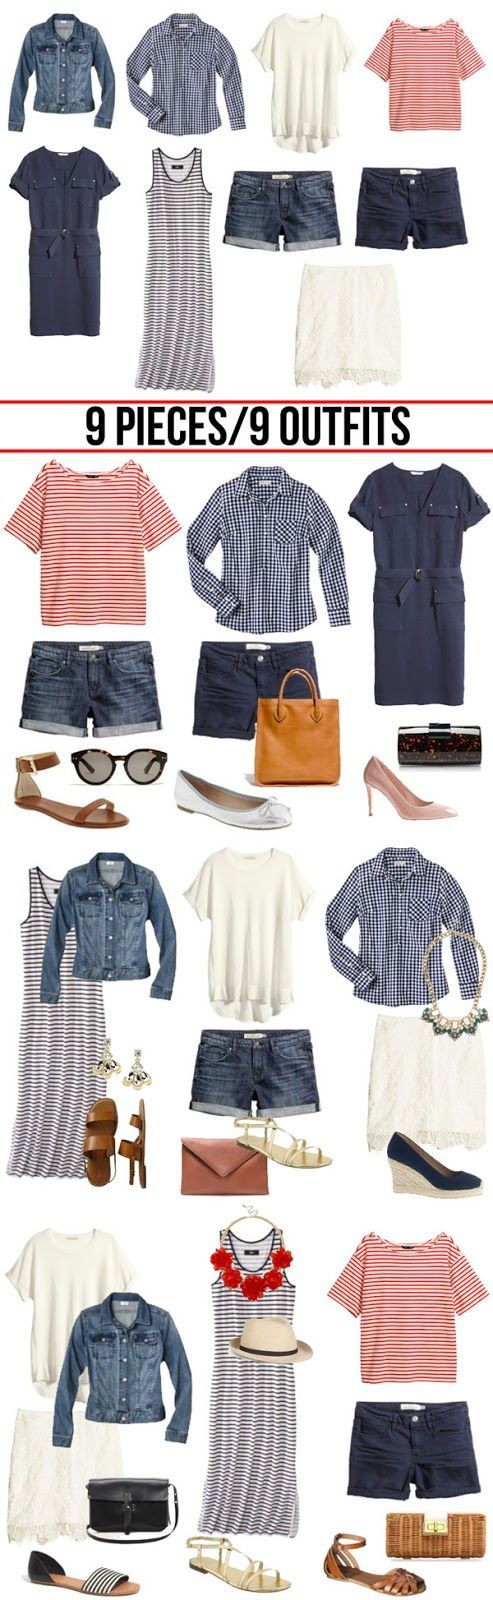 9 summer outfits from 9 pieces for curvy hourglass women over 40,50.   How to make this work: Shorts-substitute med-dark wash jeans that are comfy and flatter, not too matchy with jacket; cropped pants (below knee-calf) in navy cotton/lycra or dark denim. White lace pencil skirt-not for me! Try white flowy maxi or A-line in fabric that suits your lifestyle.  Accessories: shop your closet! Strappy sandals and flats with no arch support-ouch! Buy comfort. Substitute wedge in leather or fabric.